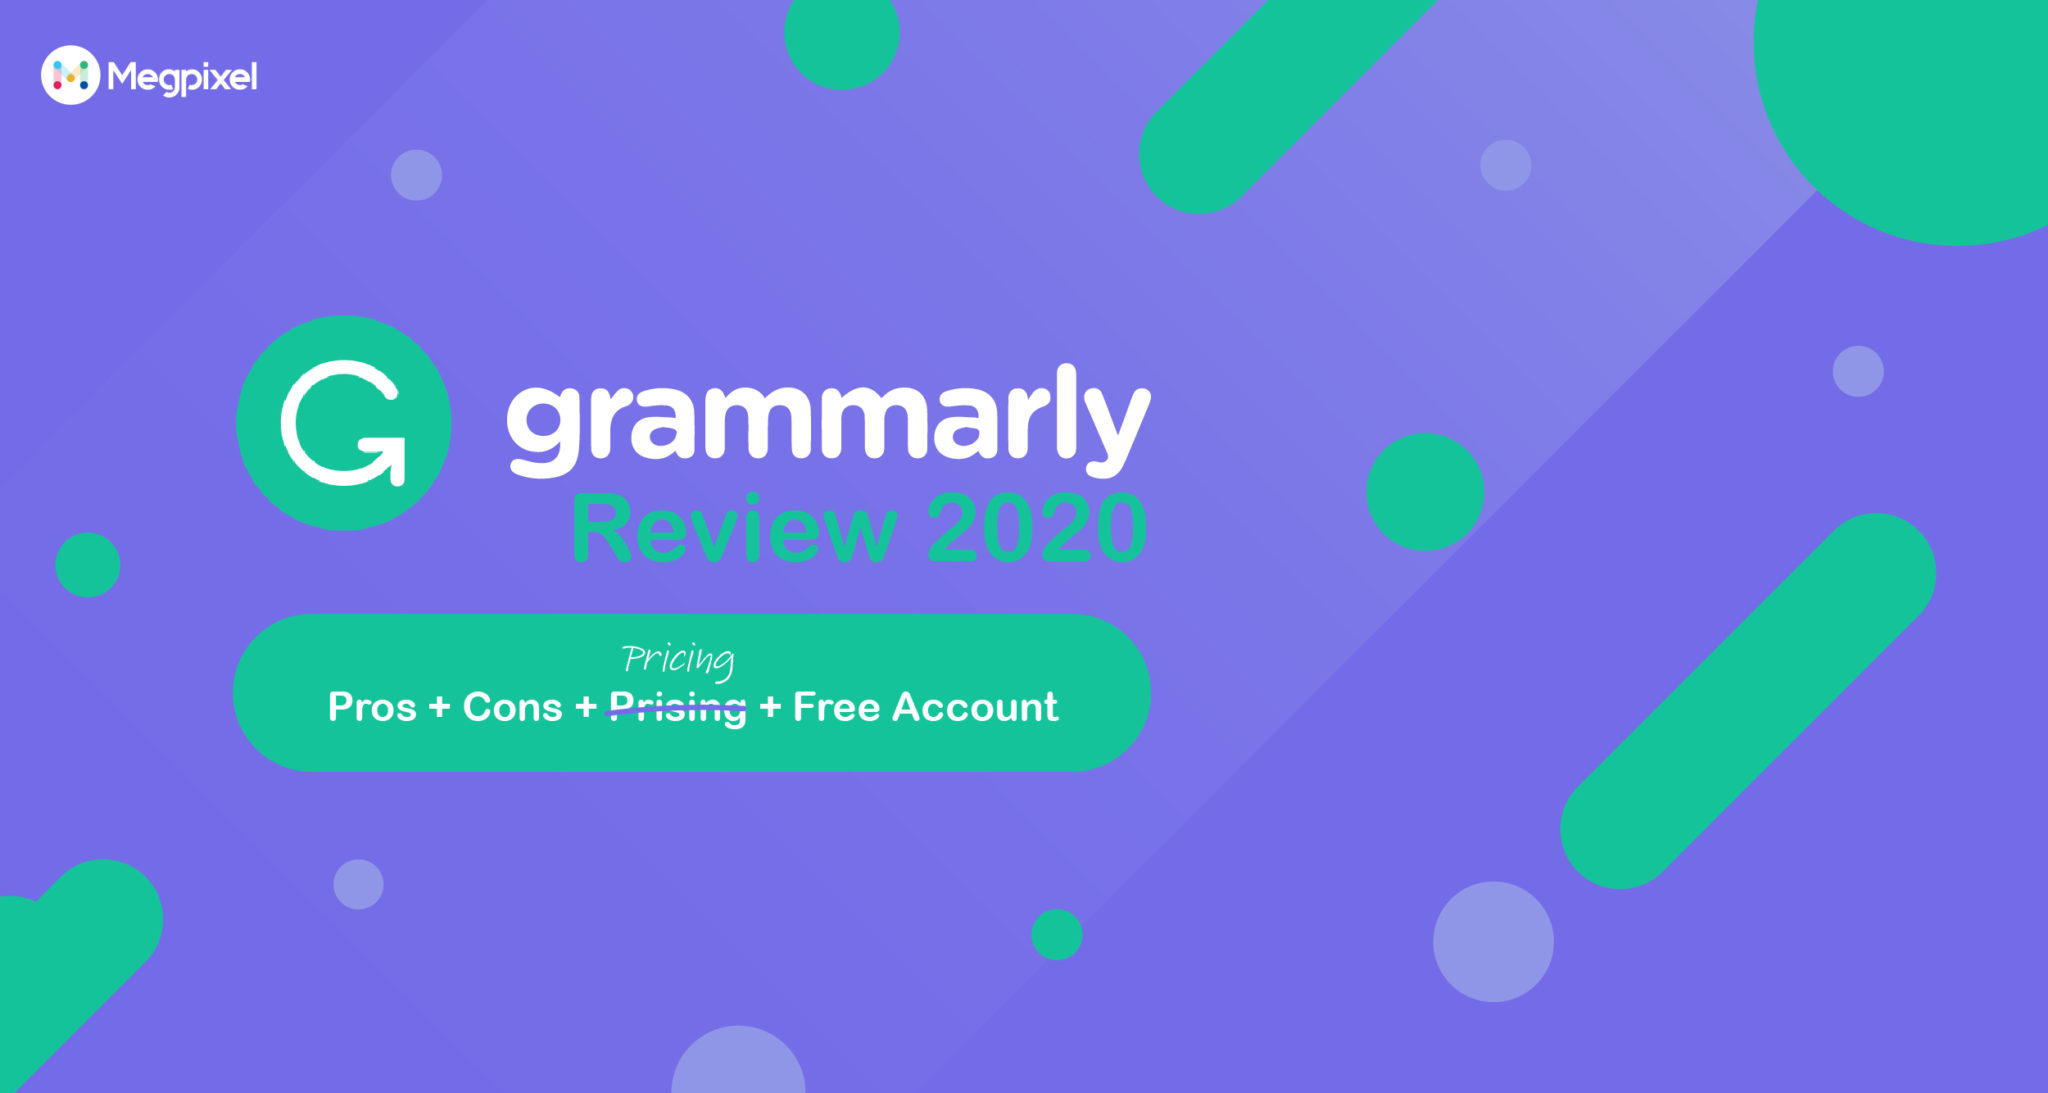 Grammarly Review - Pros, Cons, Pricing, Discount Code 2019